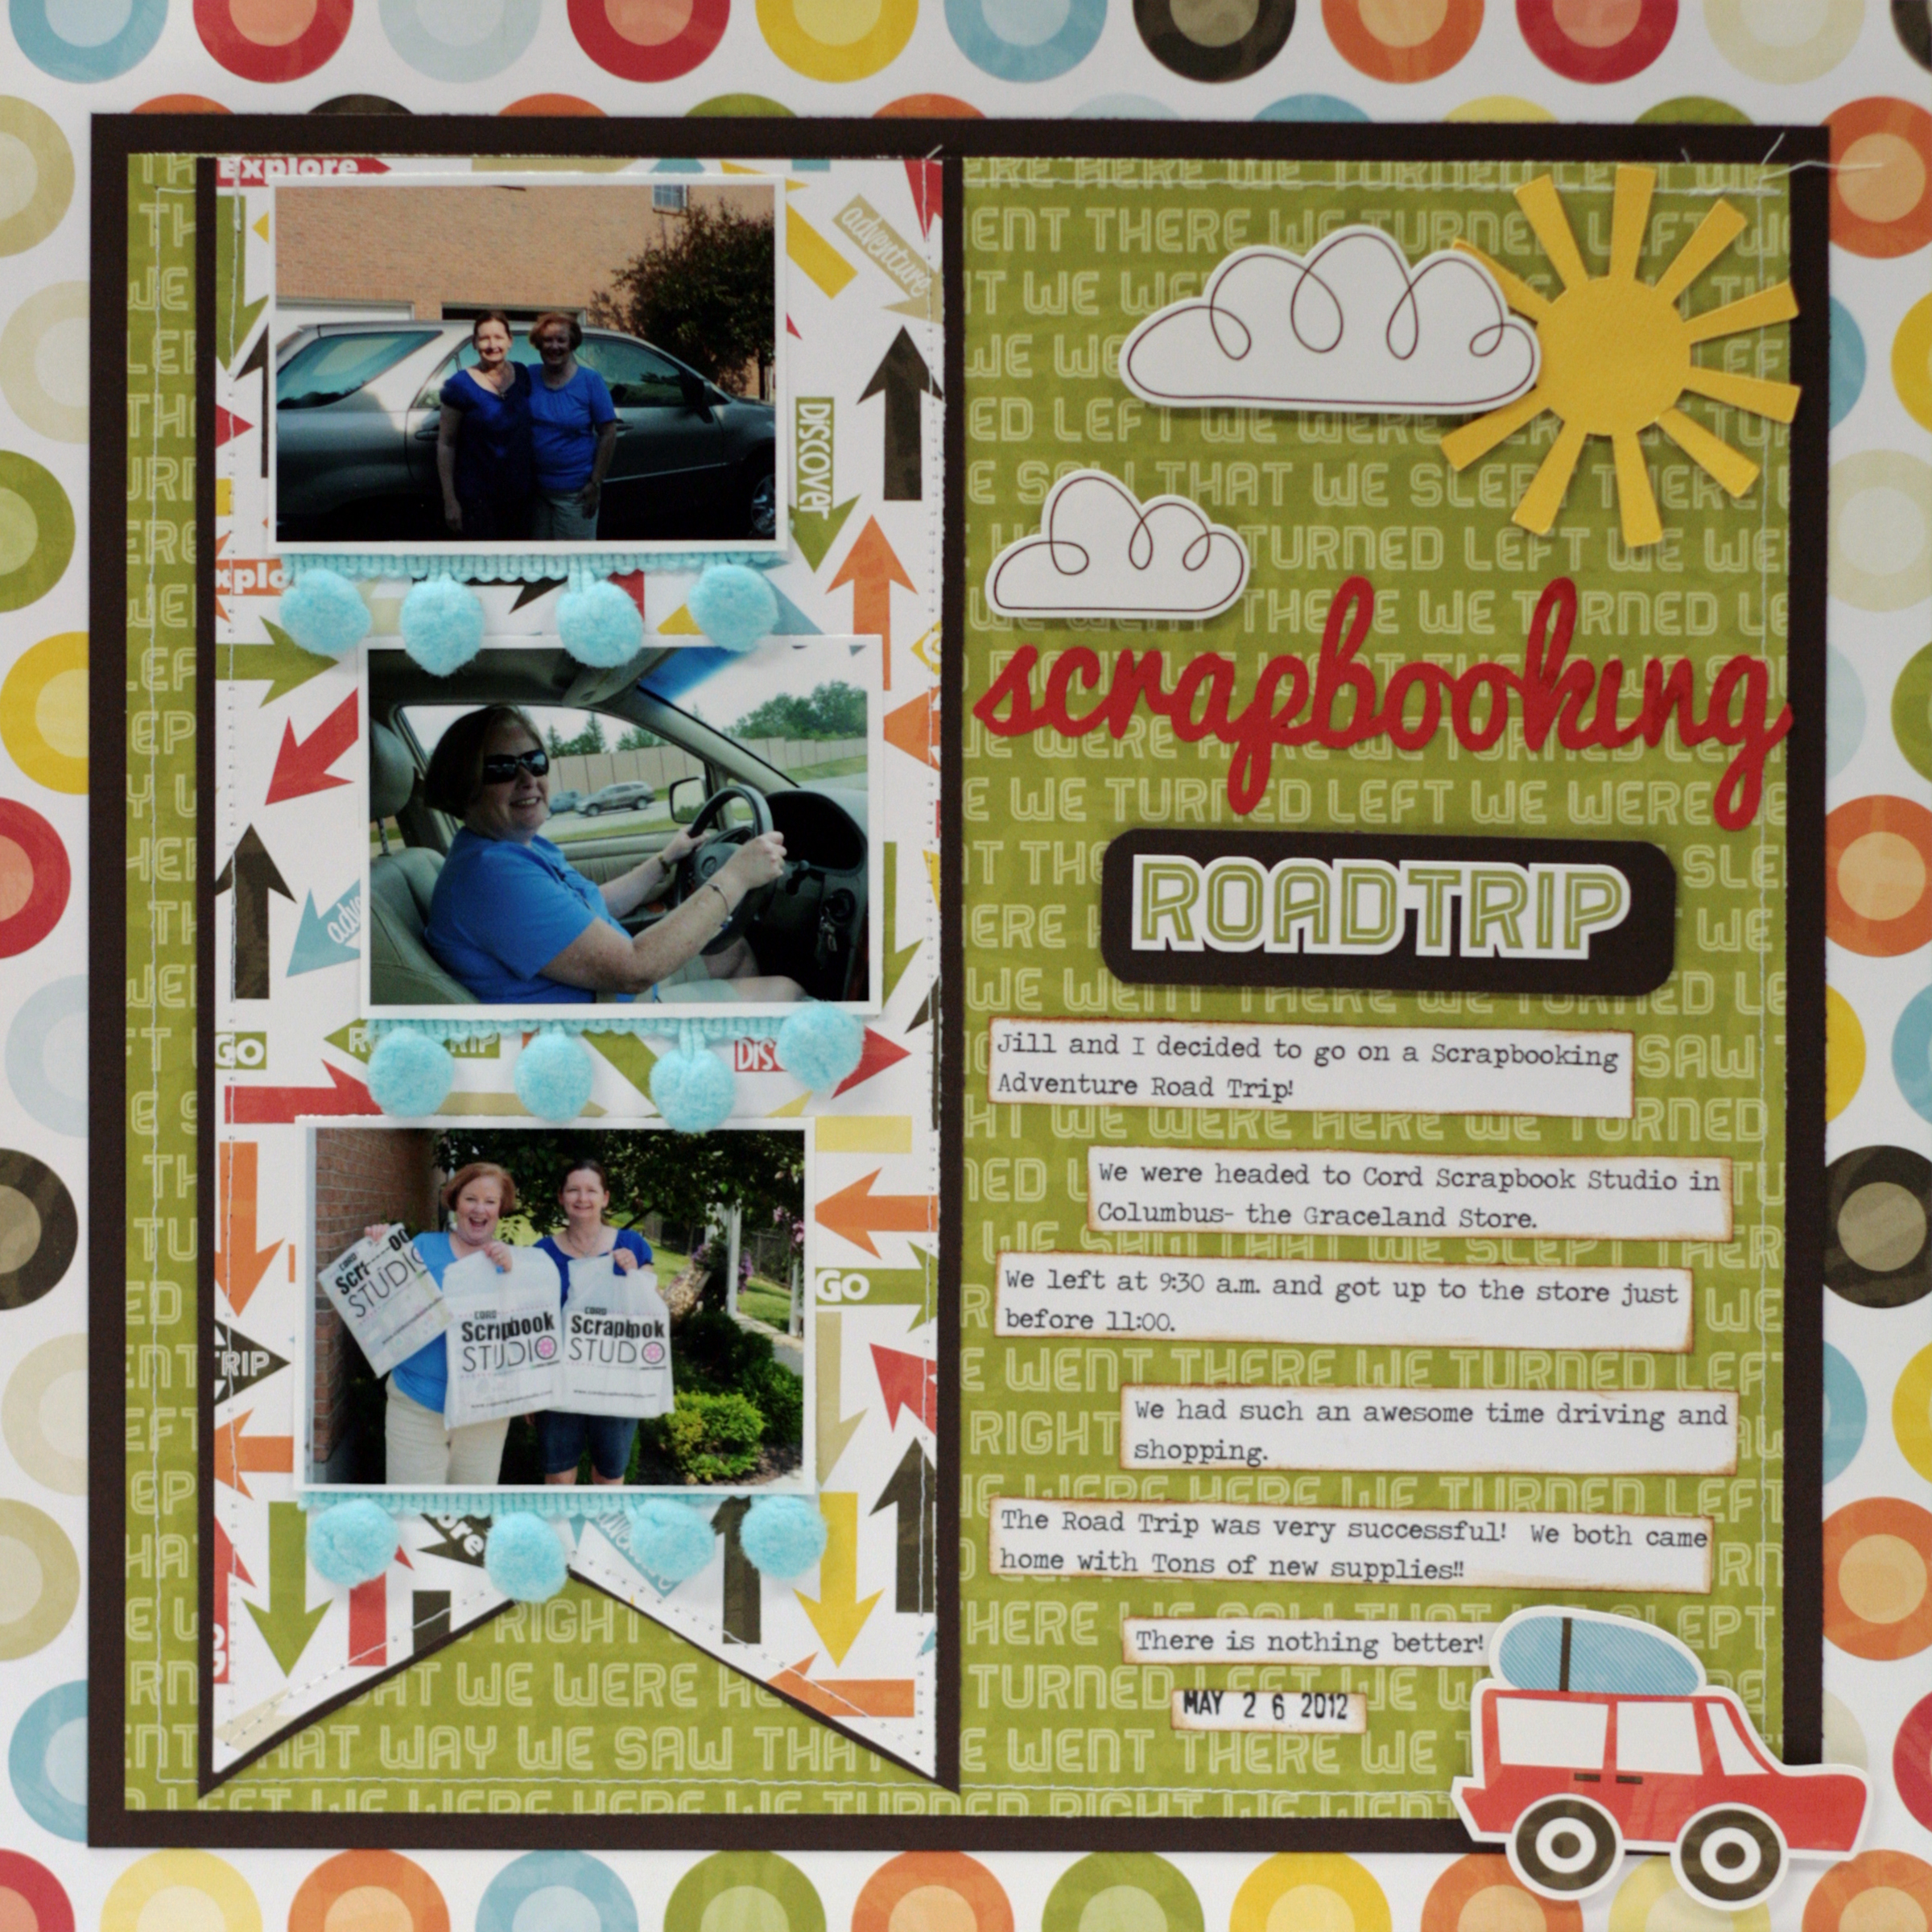 How to scrapbook a road trip -  Scrapbooking Road Trip Layout By Mary Pat Siehl